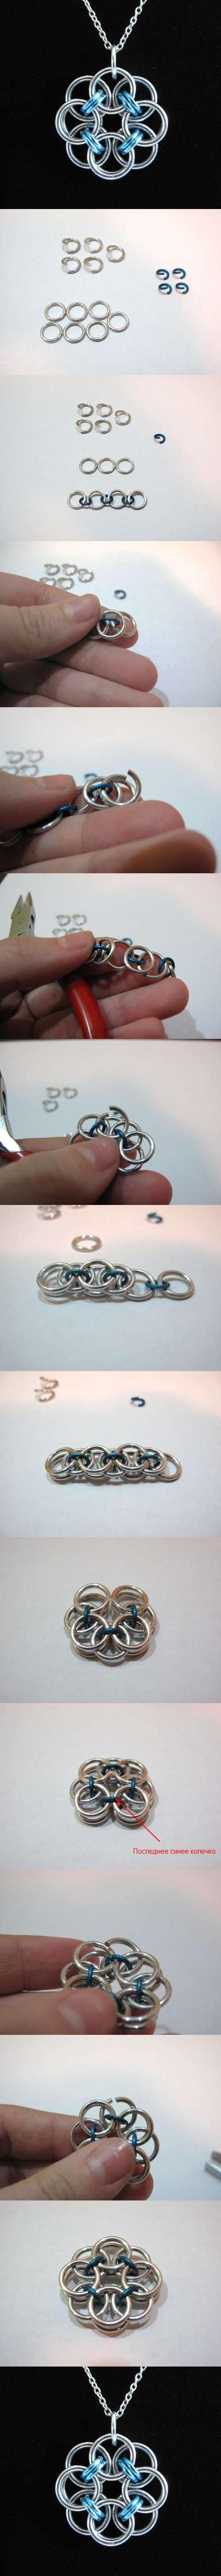 DIY Rose Wire Pendant DIY Projects